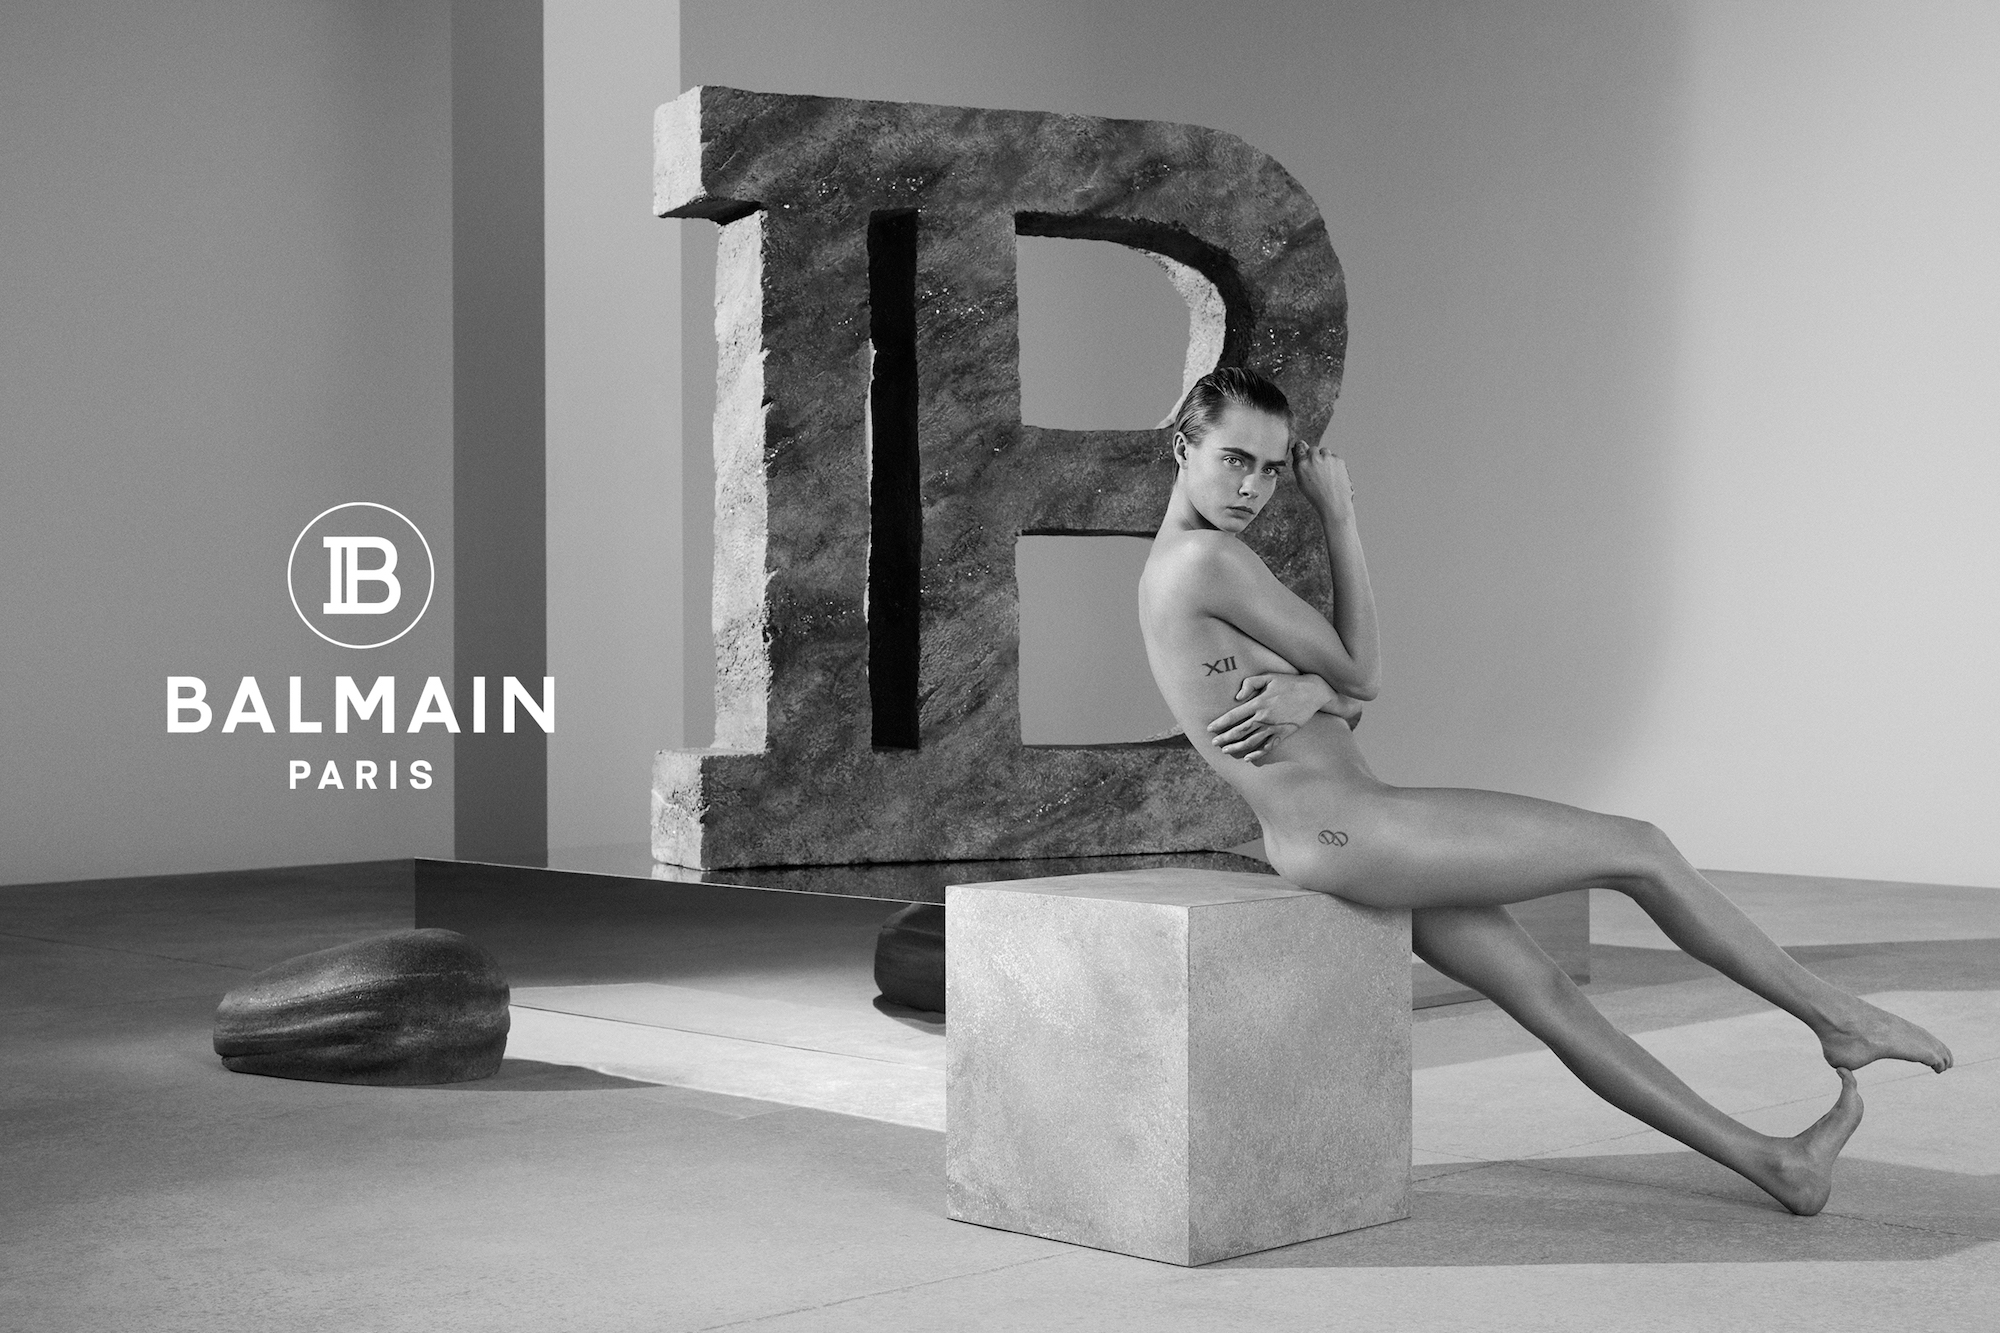 Balmain Spring Summer 2019 Advertising Campaign with nude Cara Delevingne